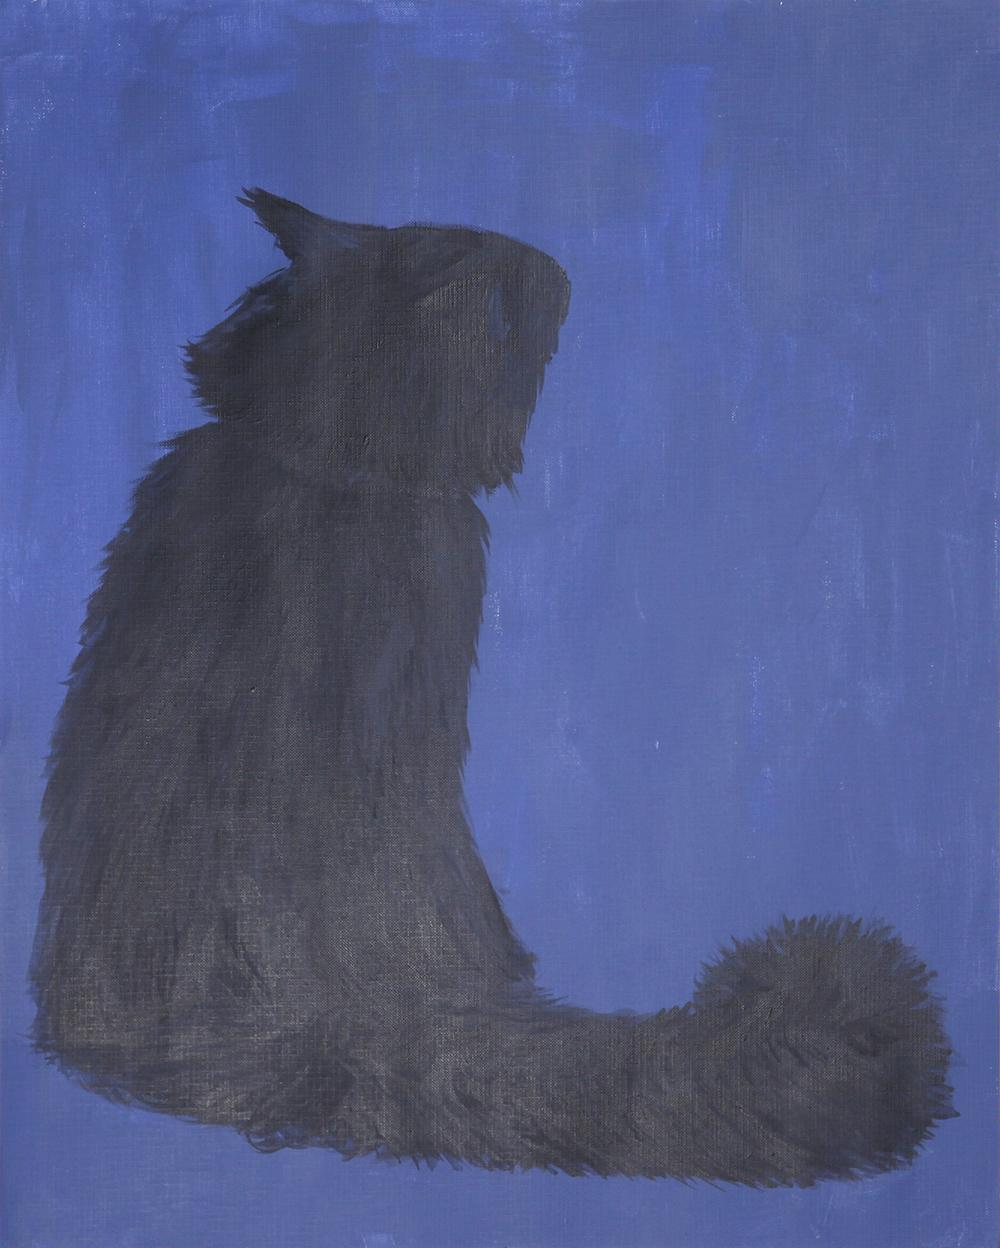 Painting of a black cat against a blue background.